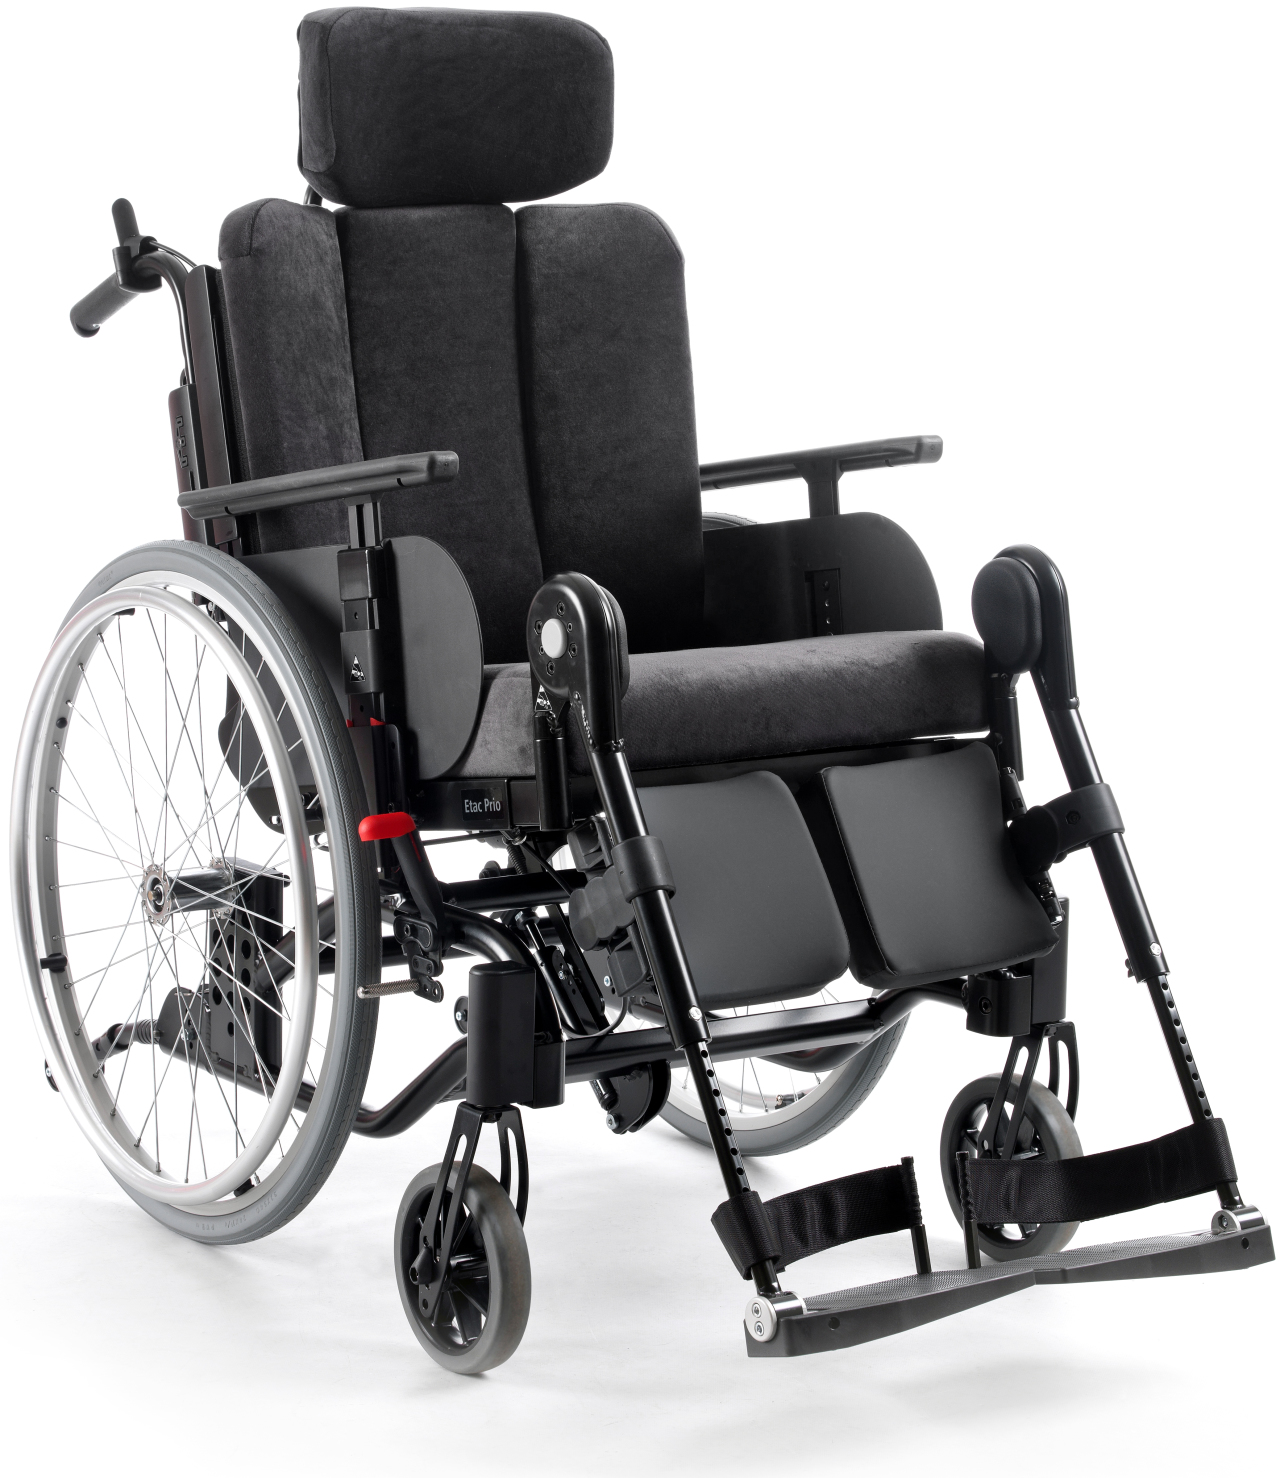 Etac Prio 3D multi-functional wheelchair